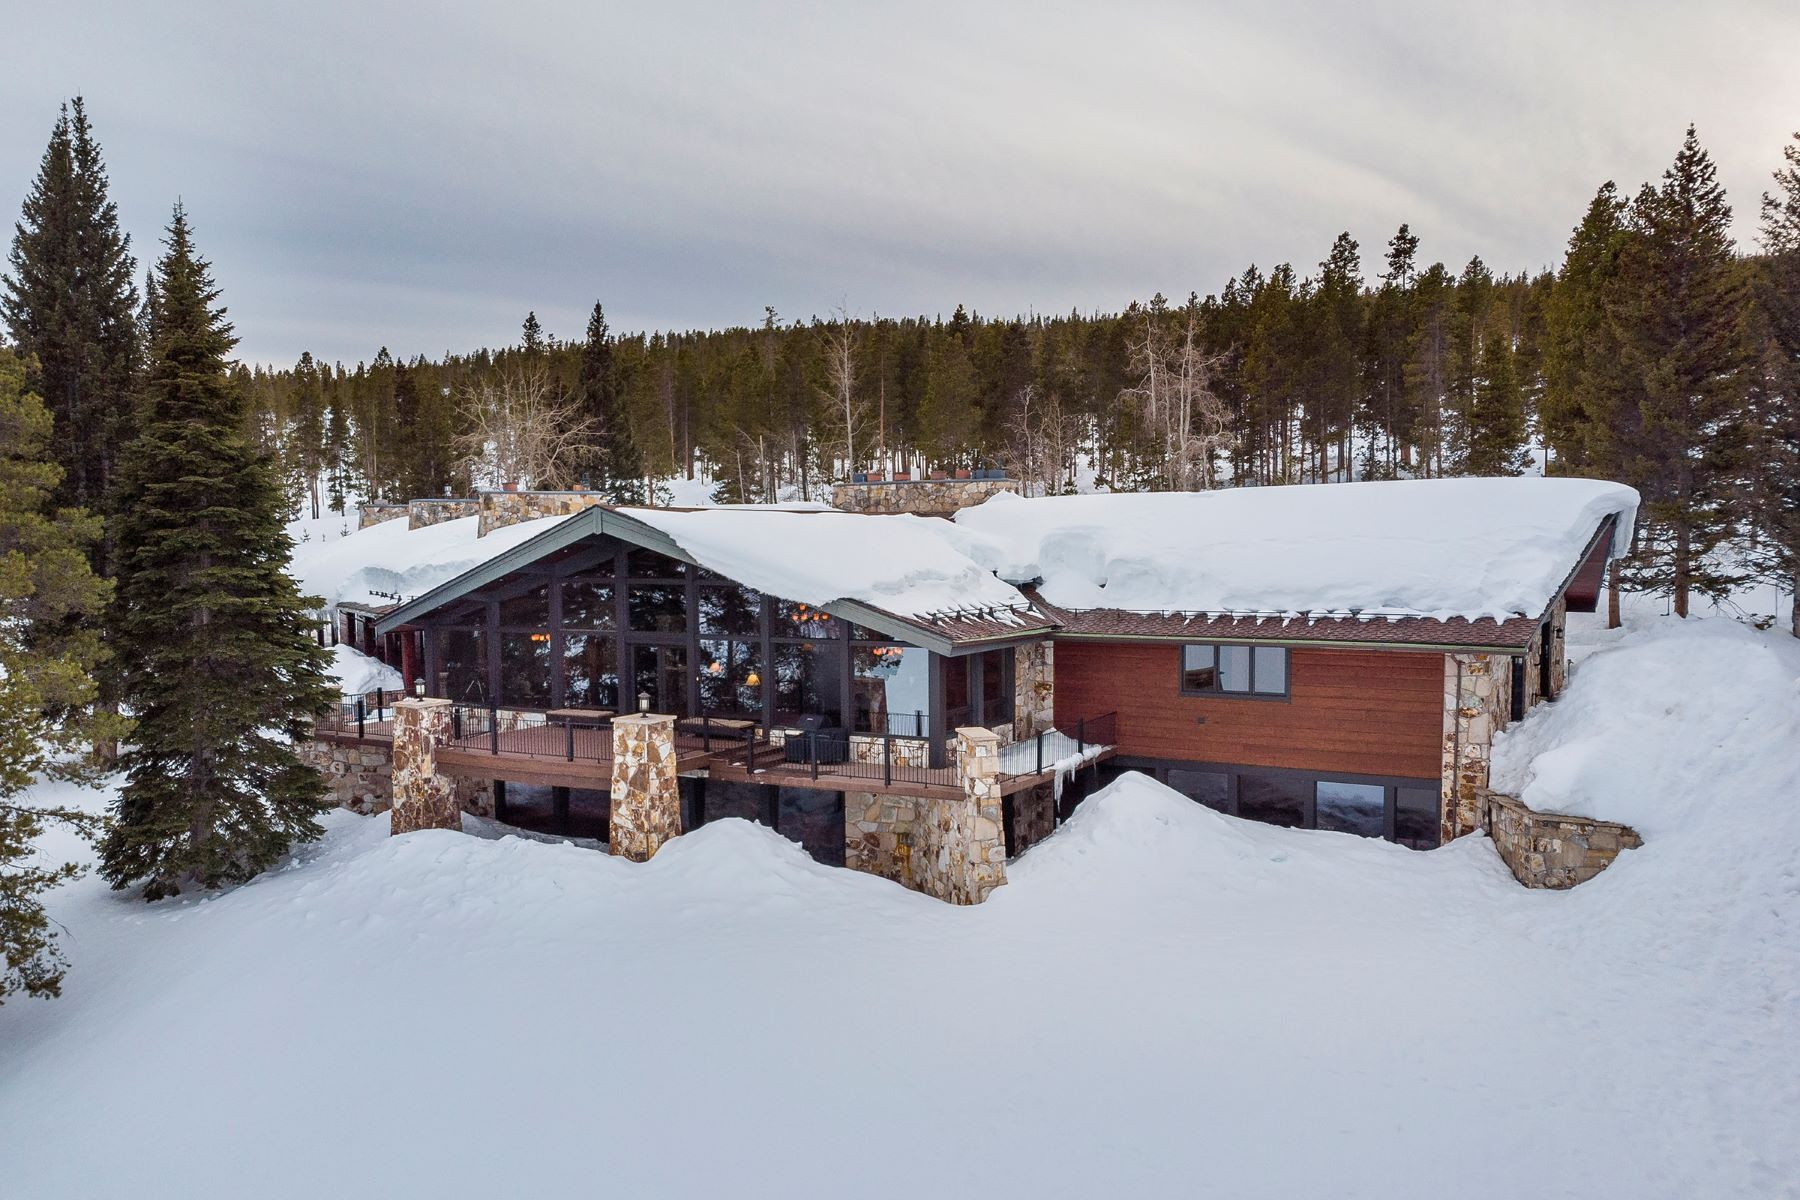 Single Family Homes for Sale at Rabbit Ears Lodge at Lake Agnes 2596 County Road 186, Steamboat Springs, Colorado 80487 United States